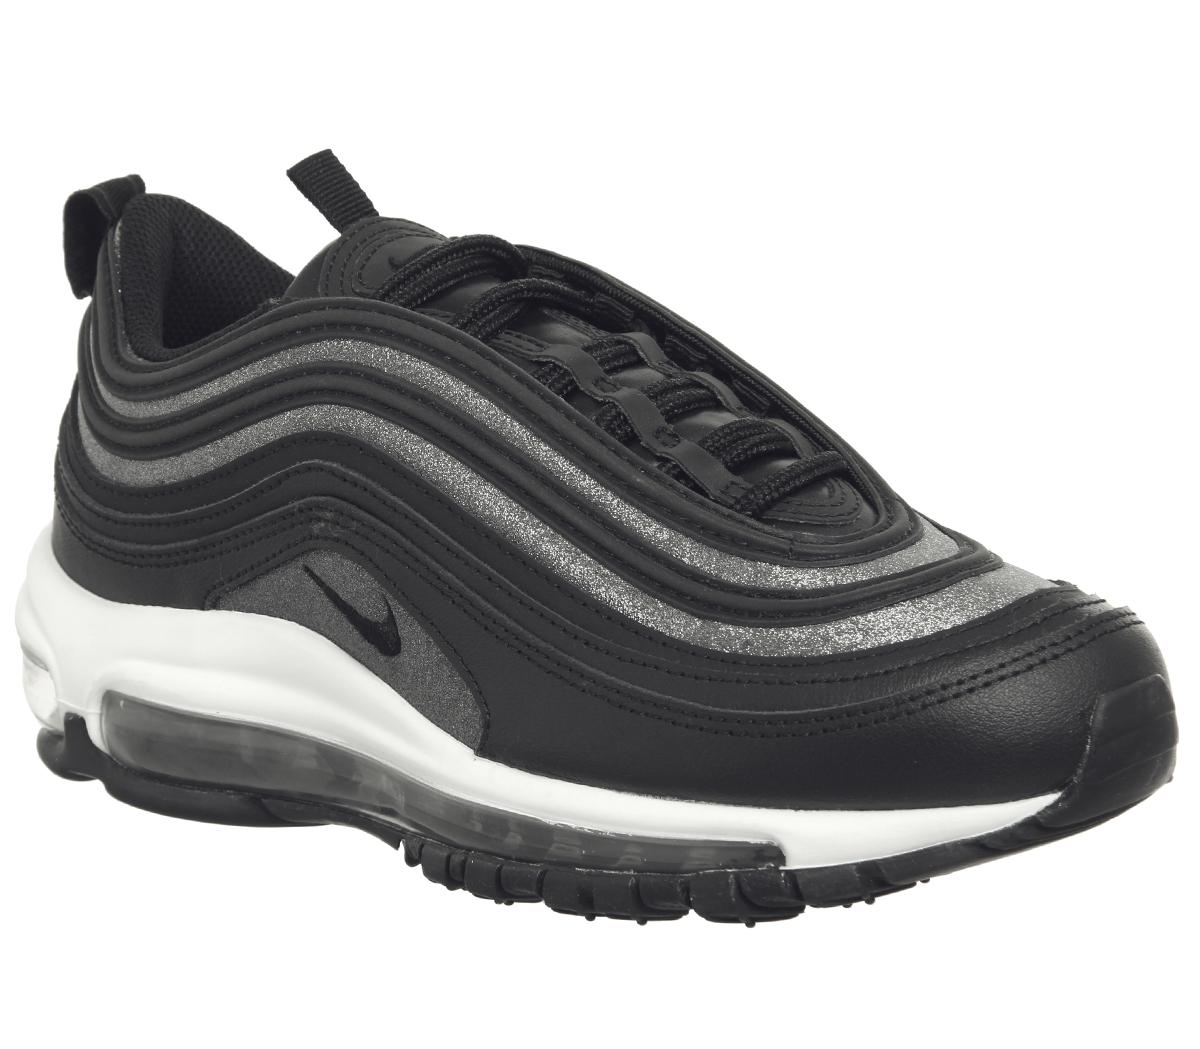 Cuyo seguro Al frente  Nike Air Max 97 Trainers Black Black Dark Grey Glitter F - Hers trainers